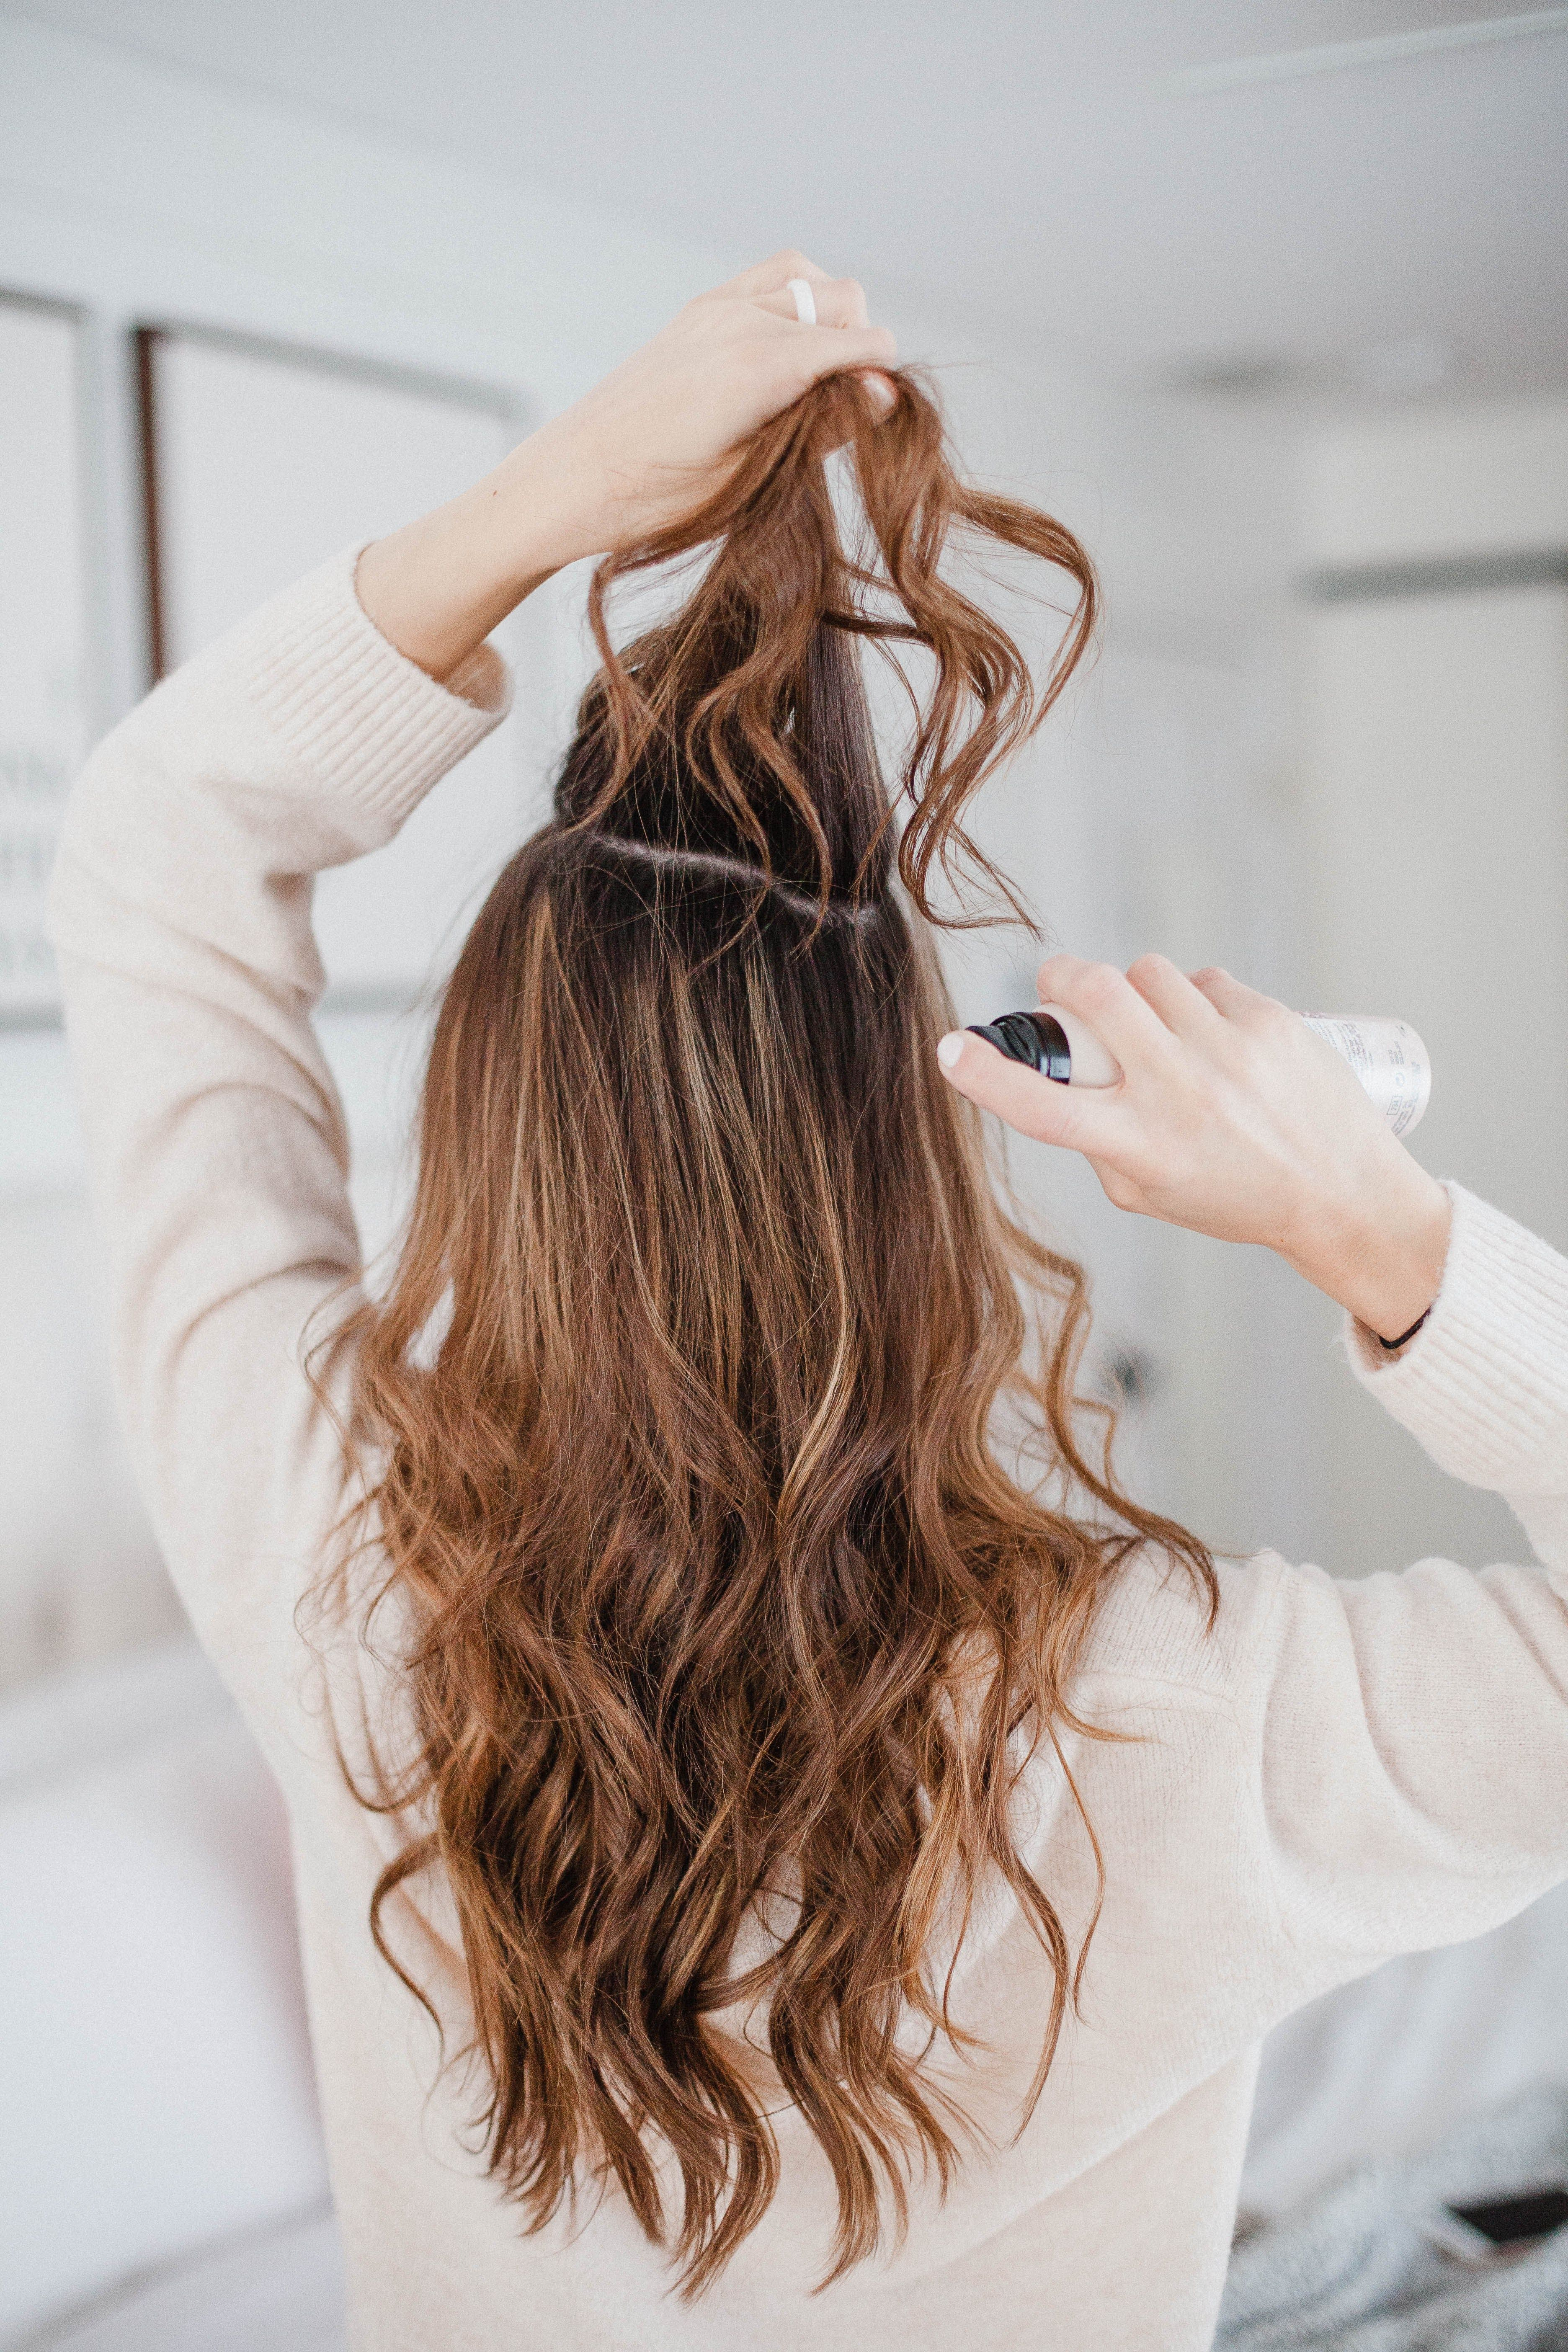 How To Use Dry Shampoo And The Best Dry Shampoo Ever Lauren Mcbride Best Dry Shampoo Using Dry Shampoo Curly Hair Styles Naturally